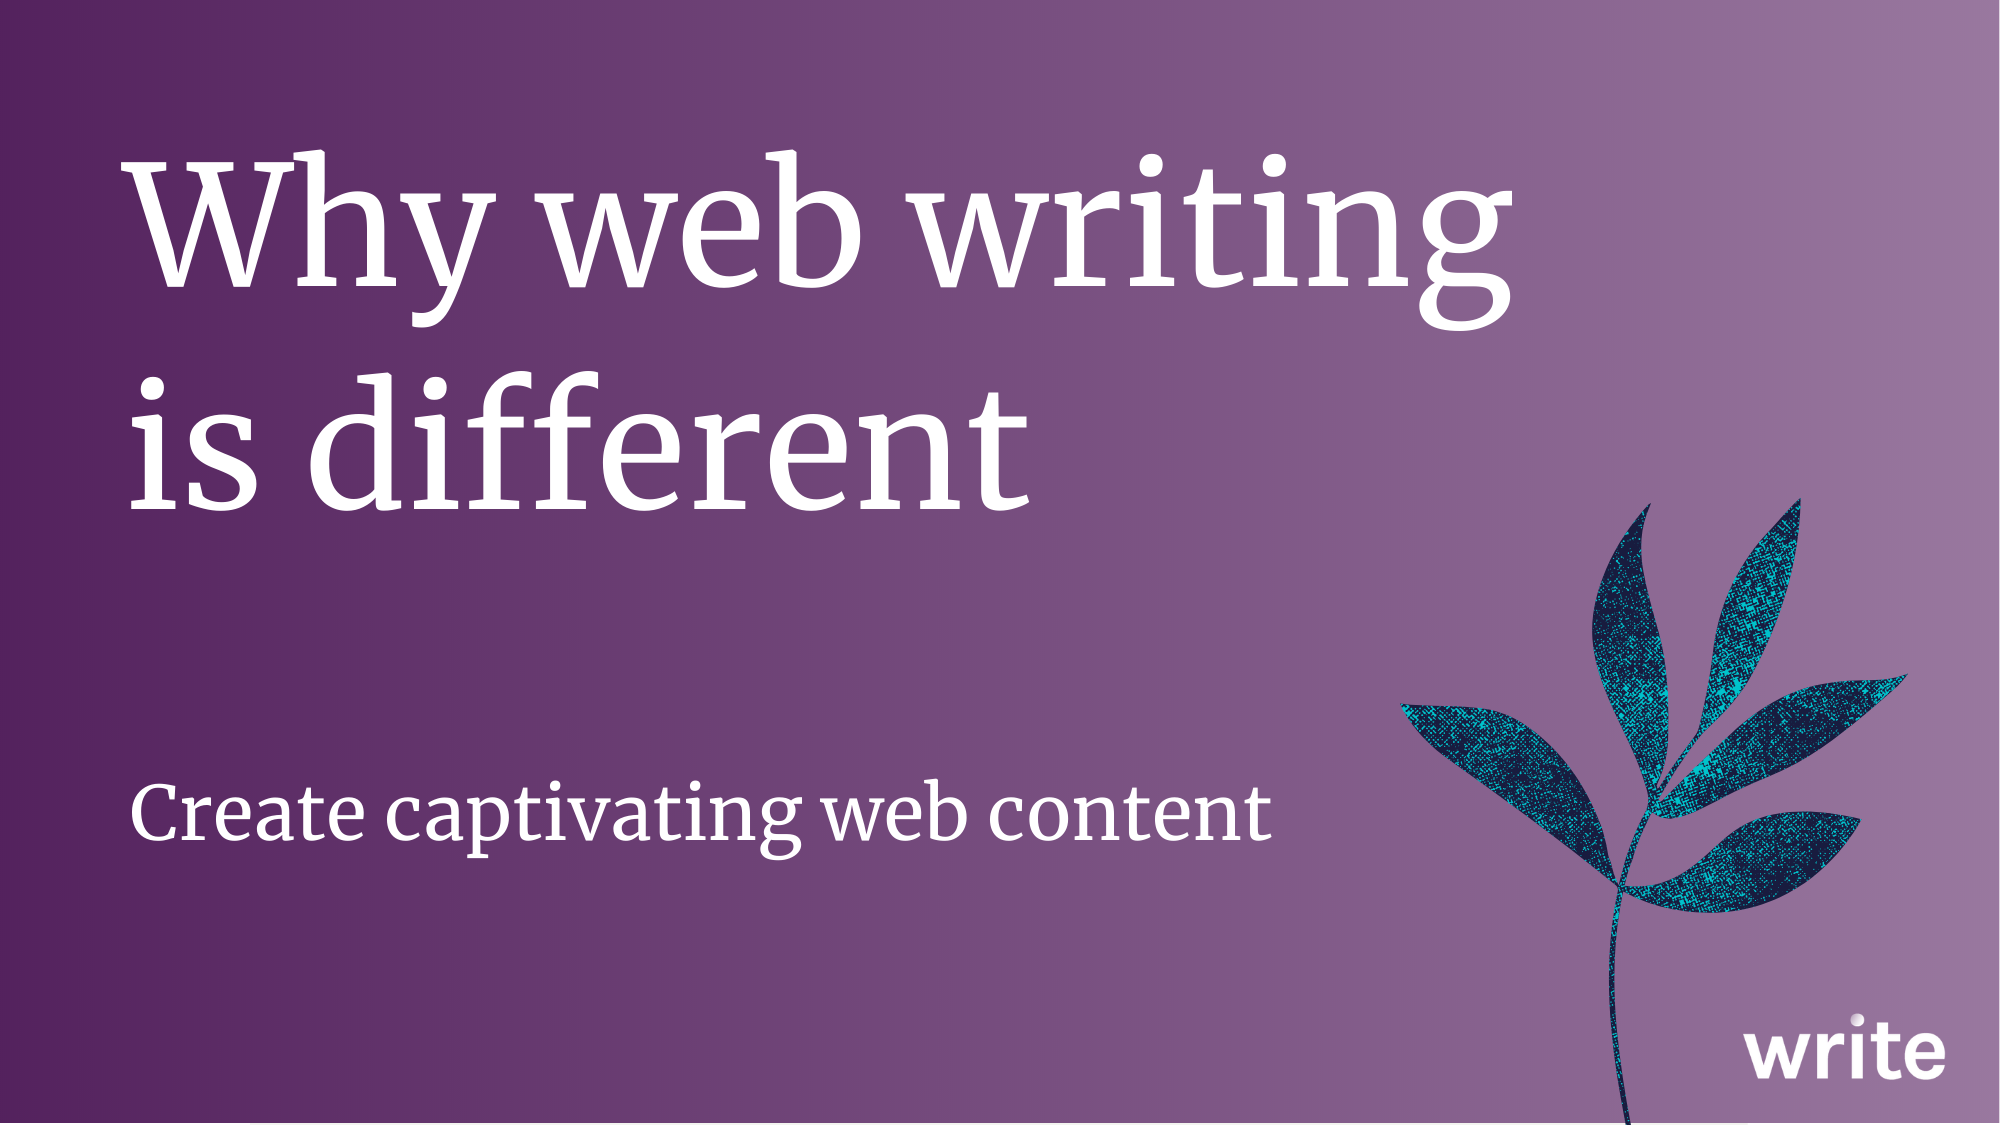 Why web writing is different